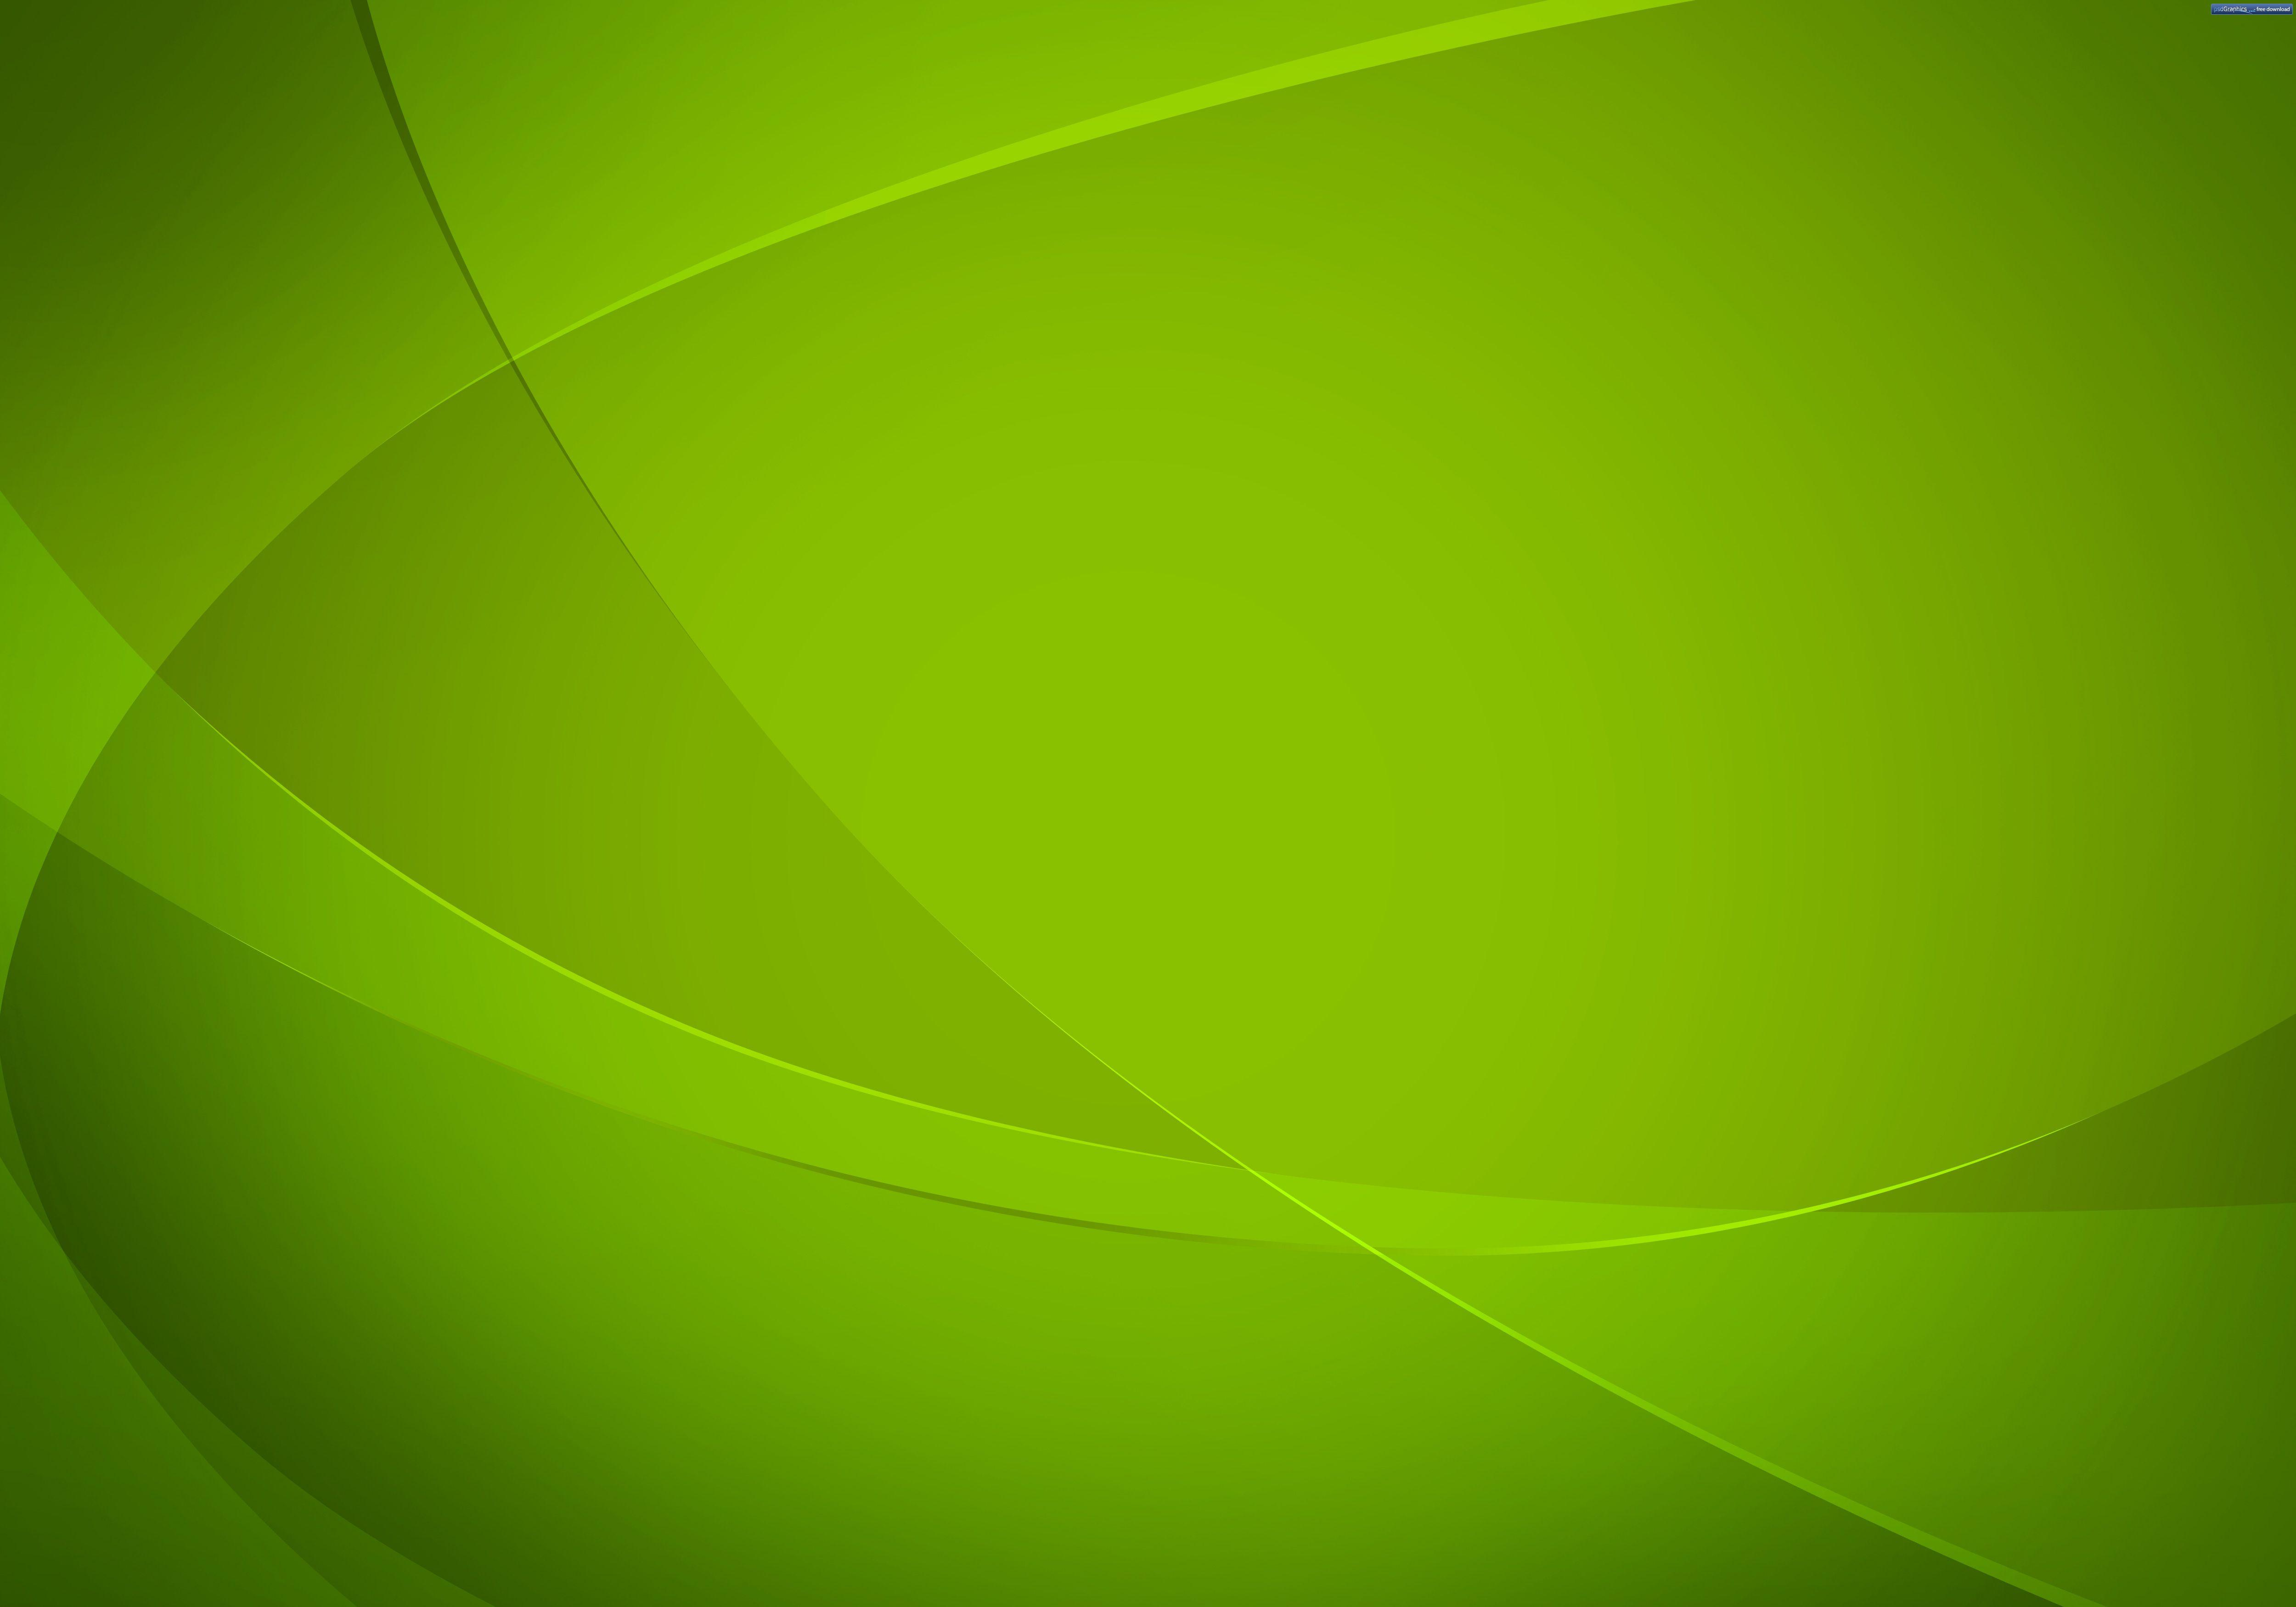 Green Backgrounds 6 Backgrounds